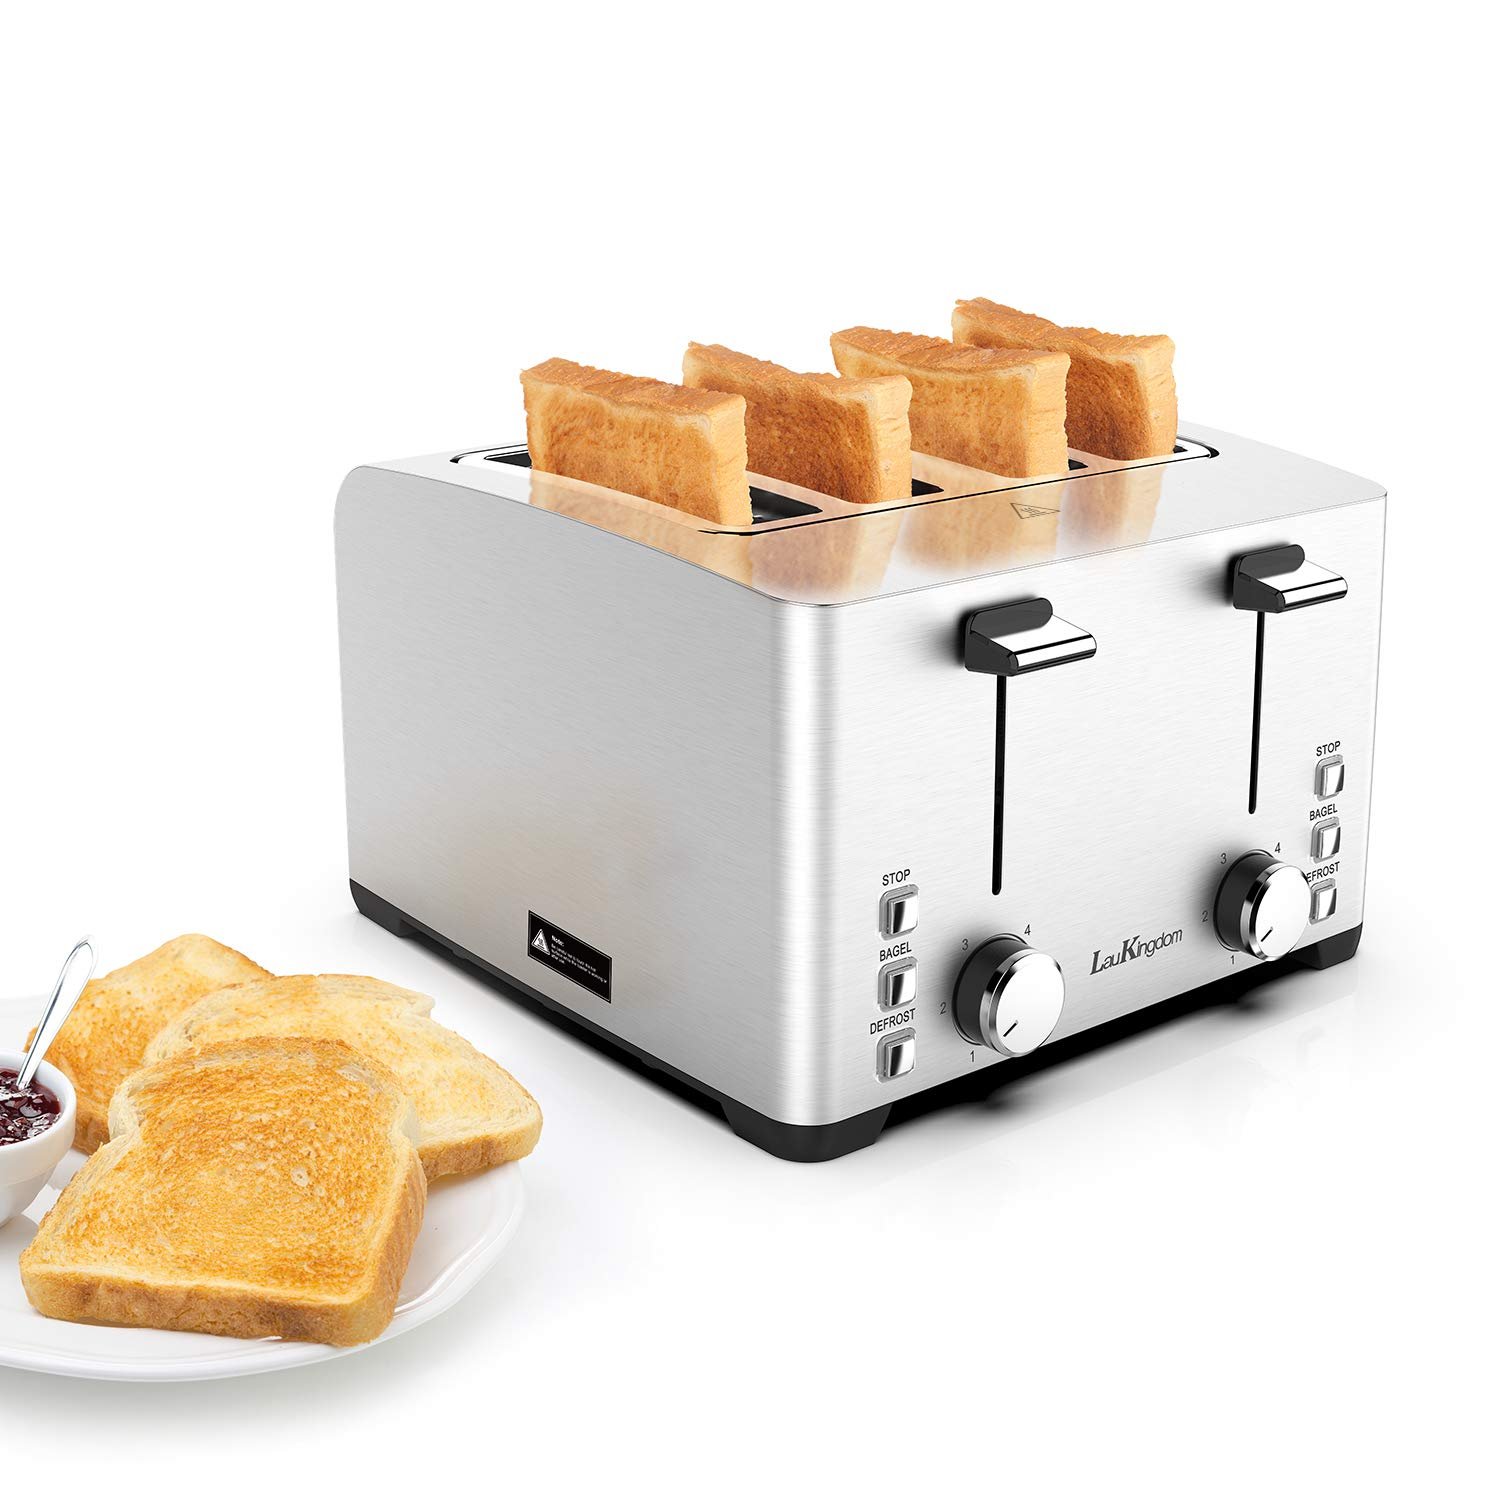 Toaster, Laukingdom Toasters 4 Slice Best Rated Prime, Top Rated Stainless Steel with Stop /Bagel /Defrost Function,Extra Wide Slots, 1500W Silver by Laukingdom